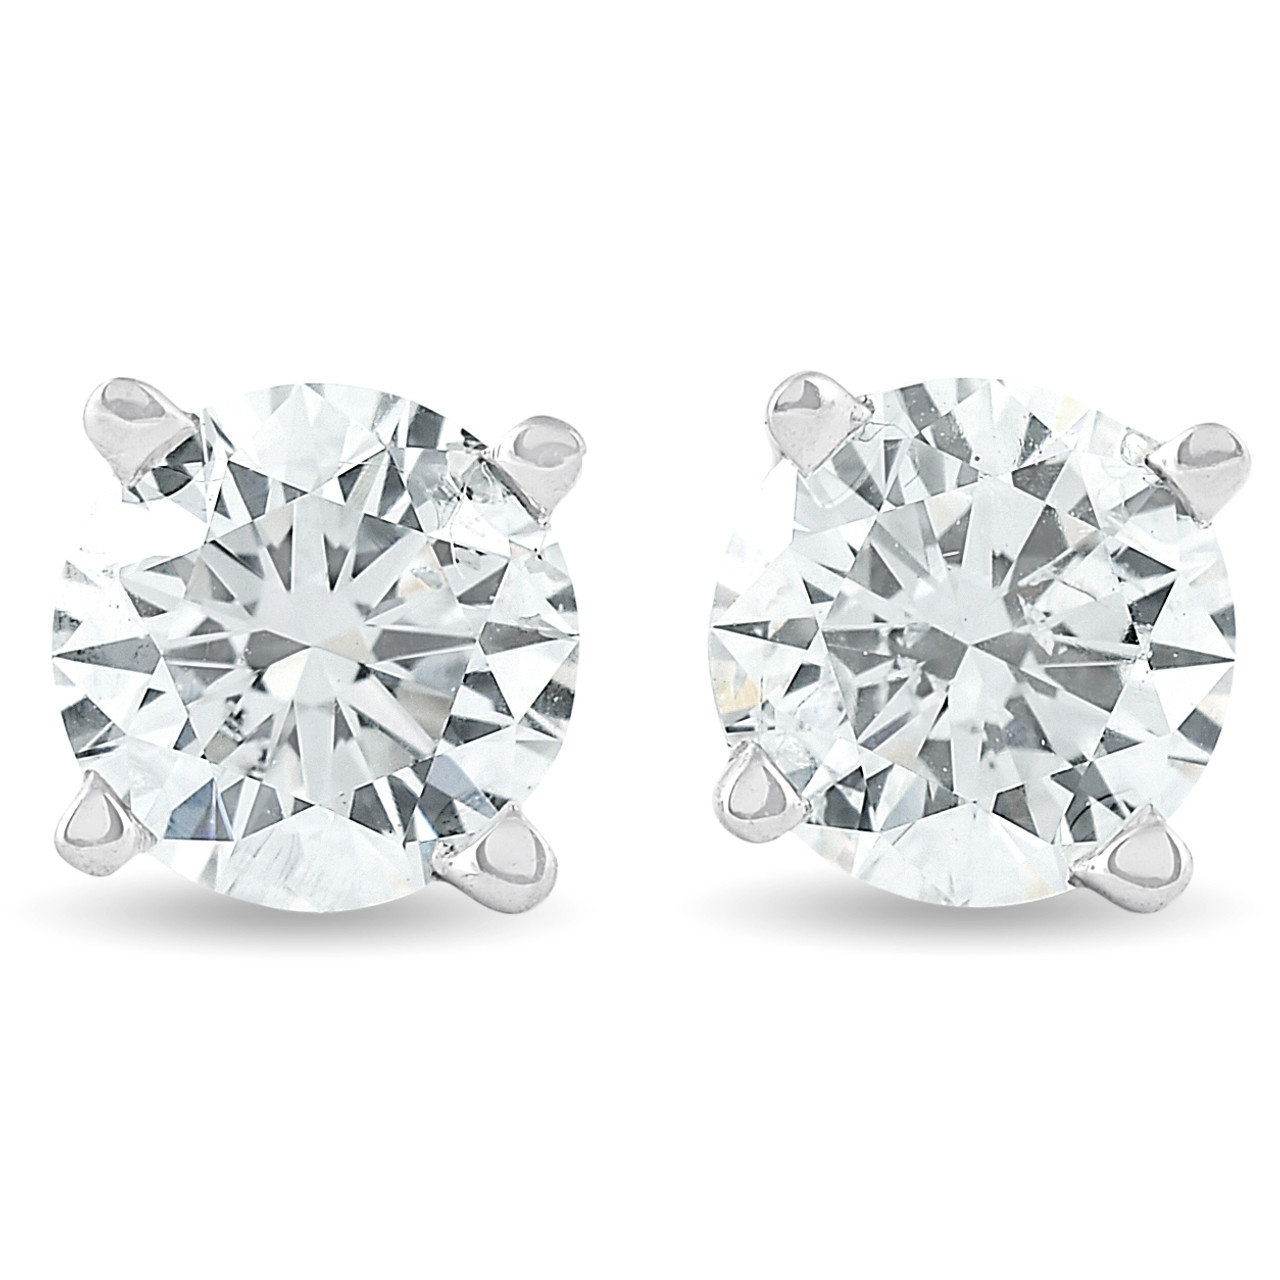 1//2 Ct Round Brilliant Cut Natural Diamond Stud Earrings In 14K Gold Push Back